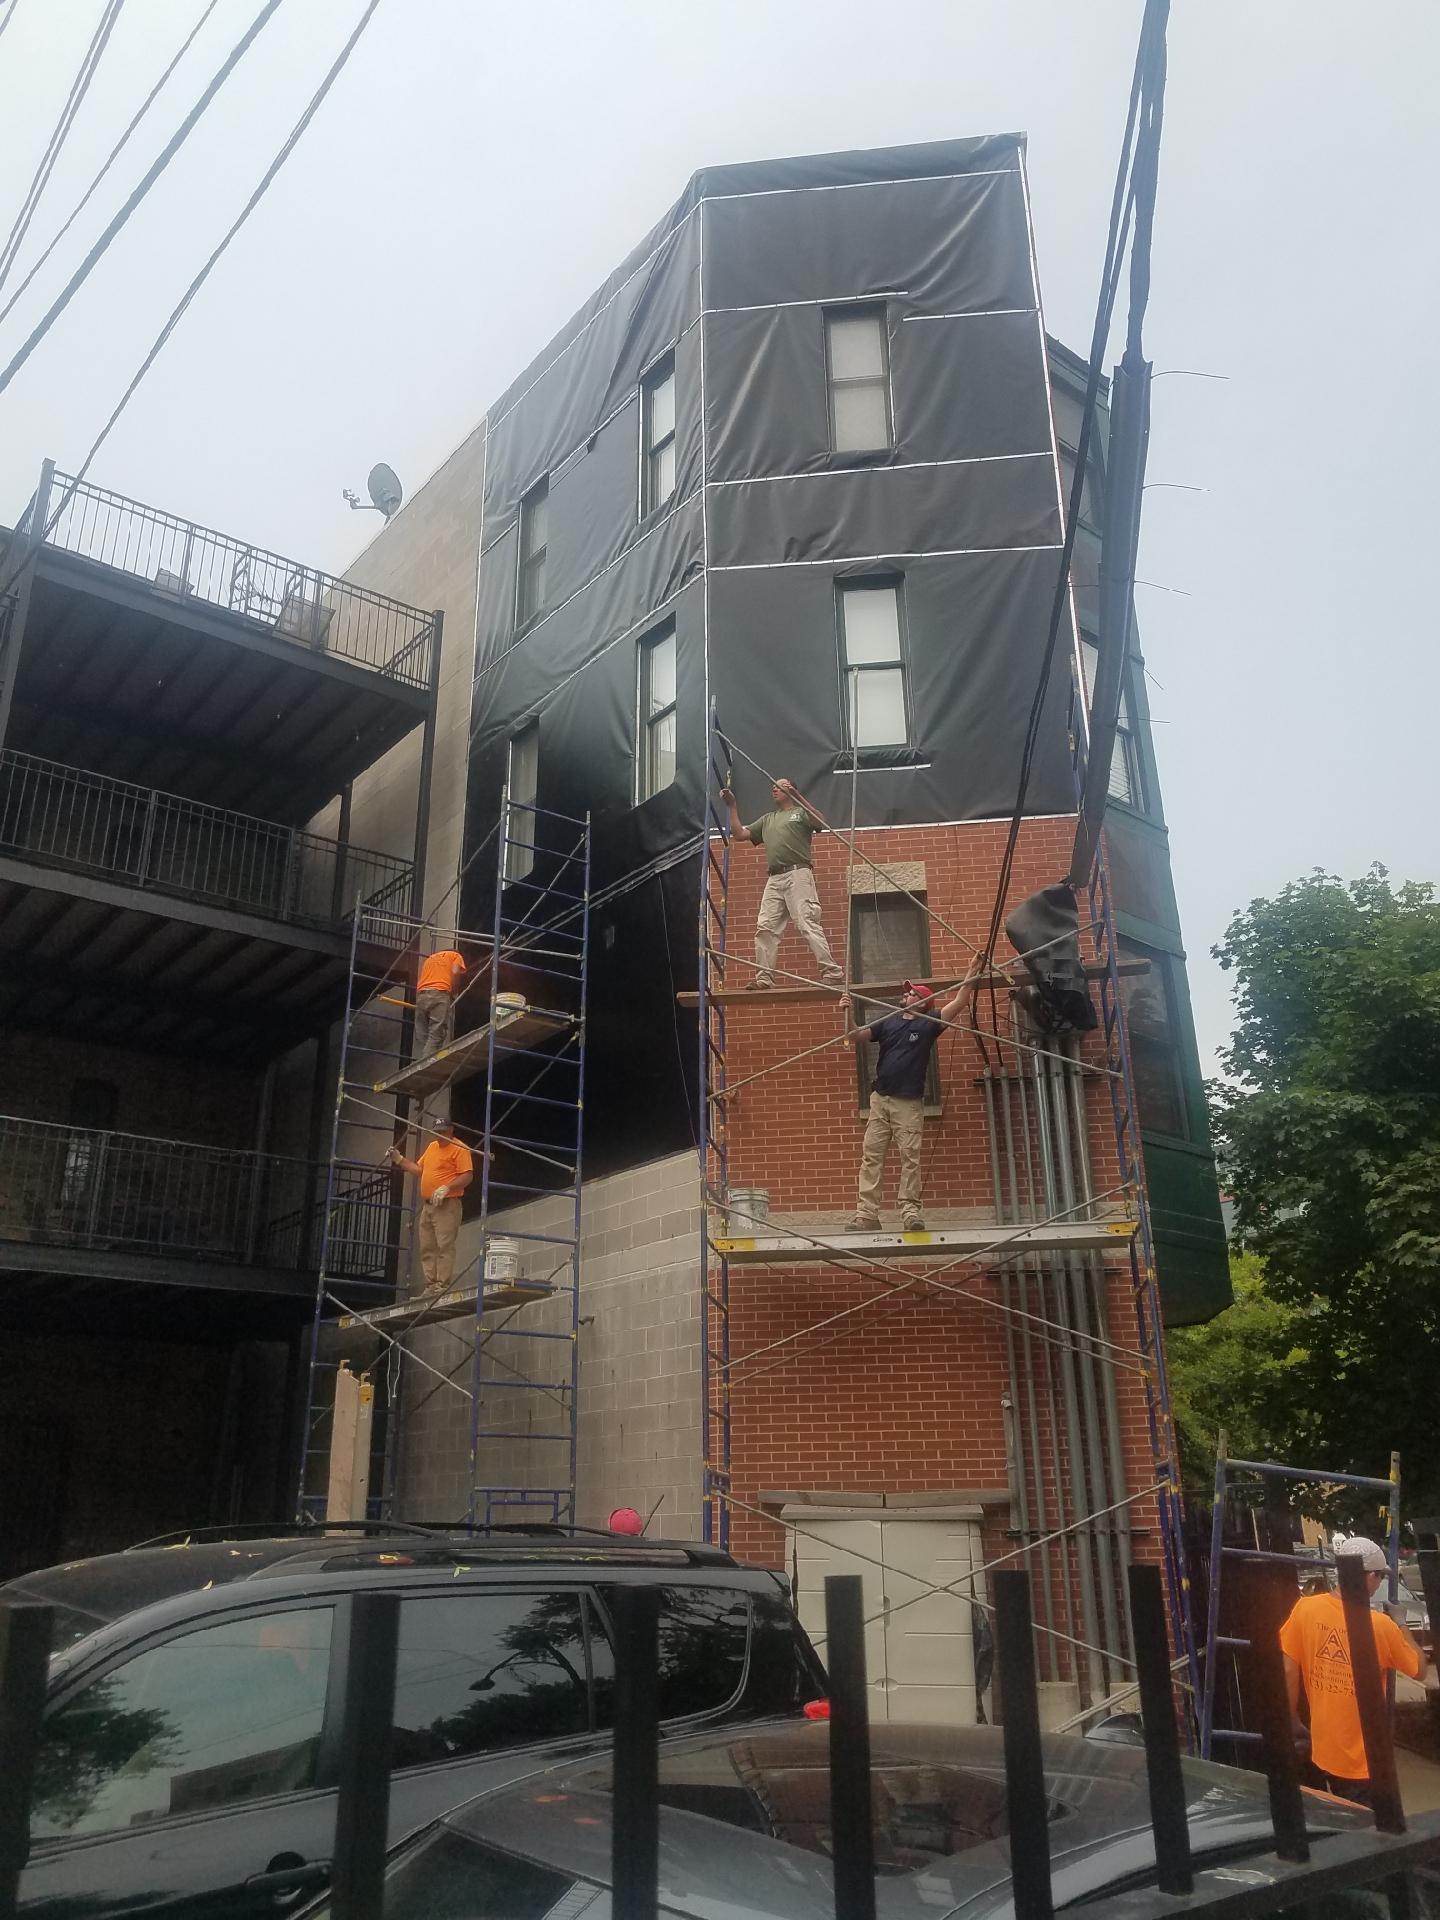 Workers installing heavy-duty vinyl tarpaulins on a building in Lincoln Park, Chicago